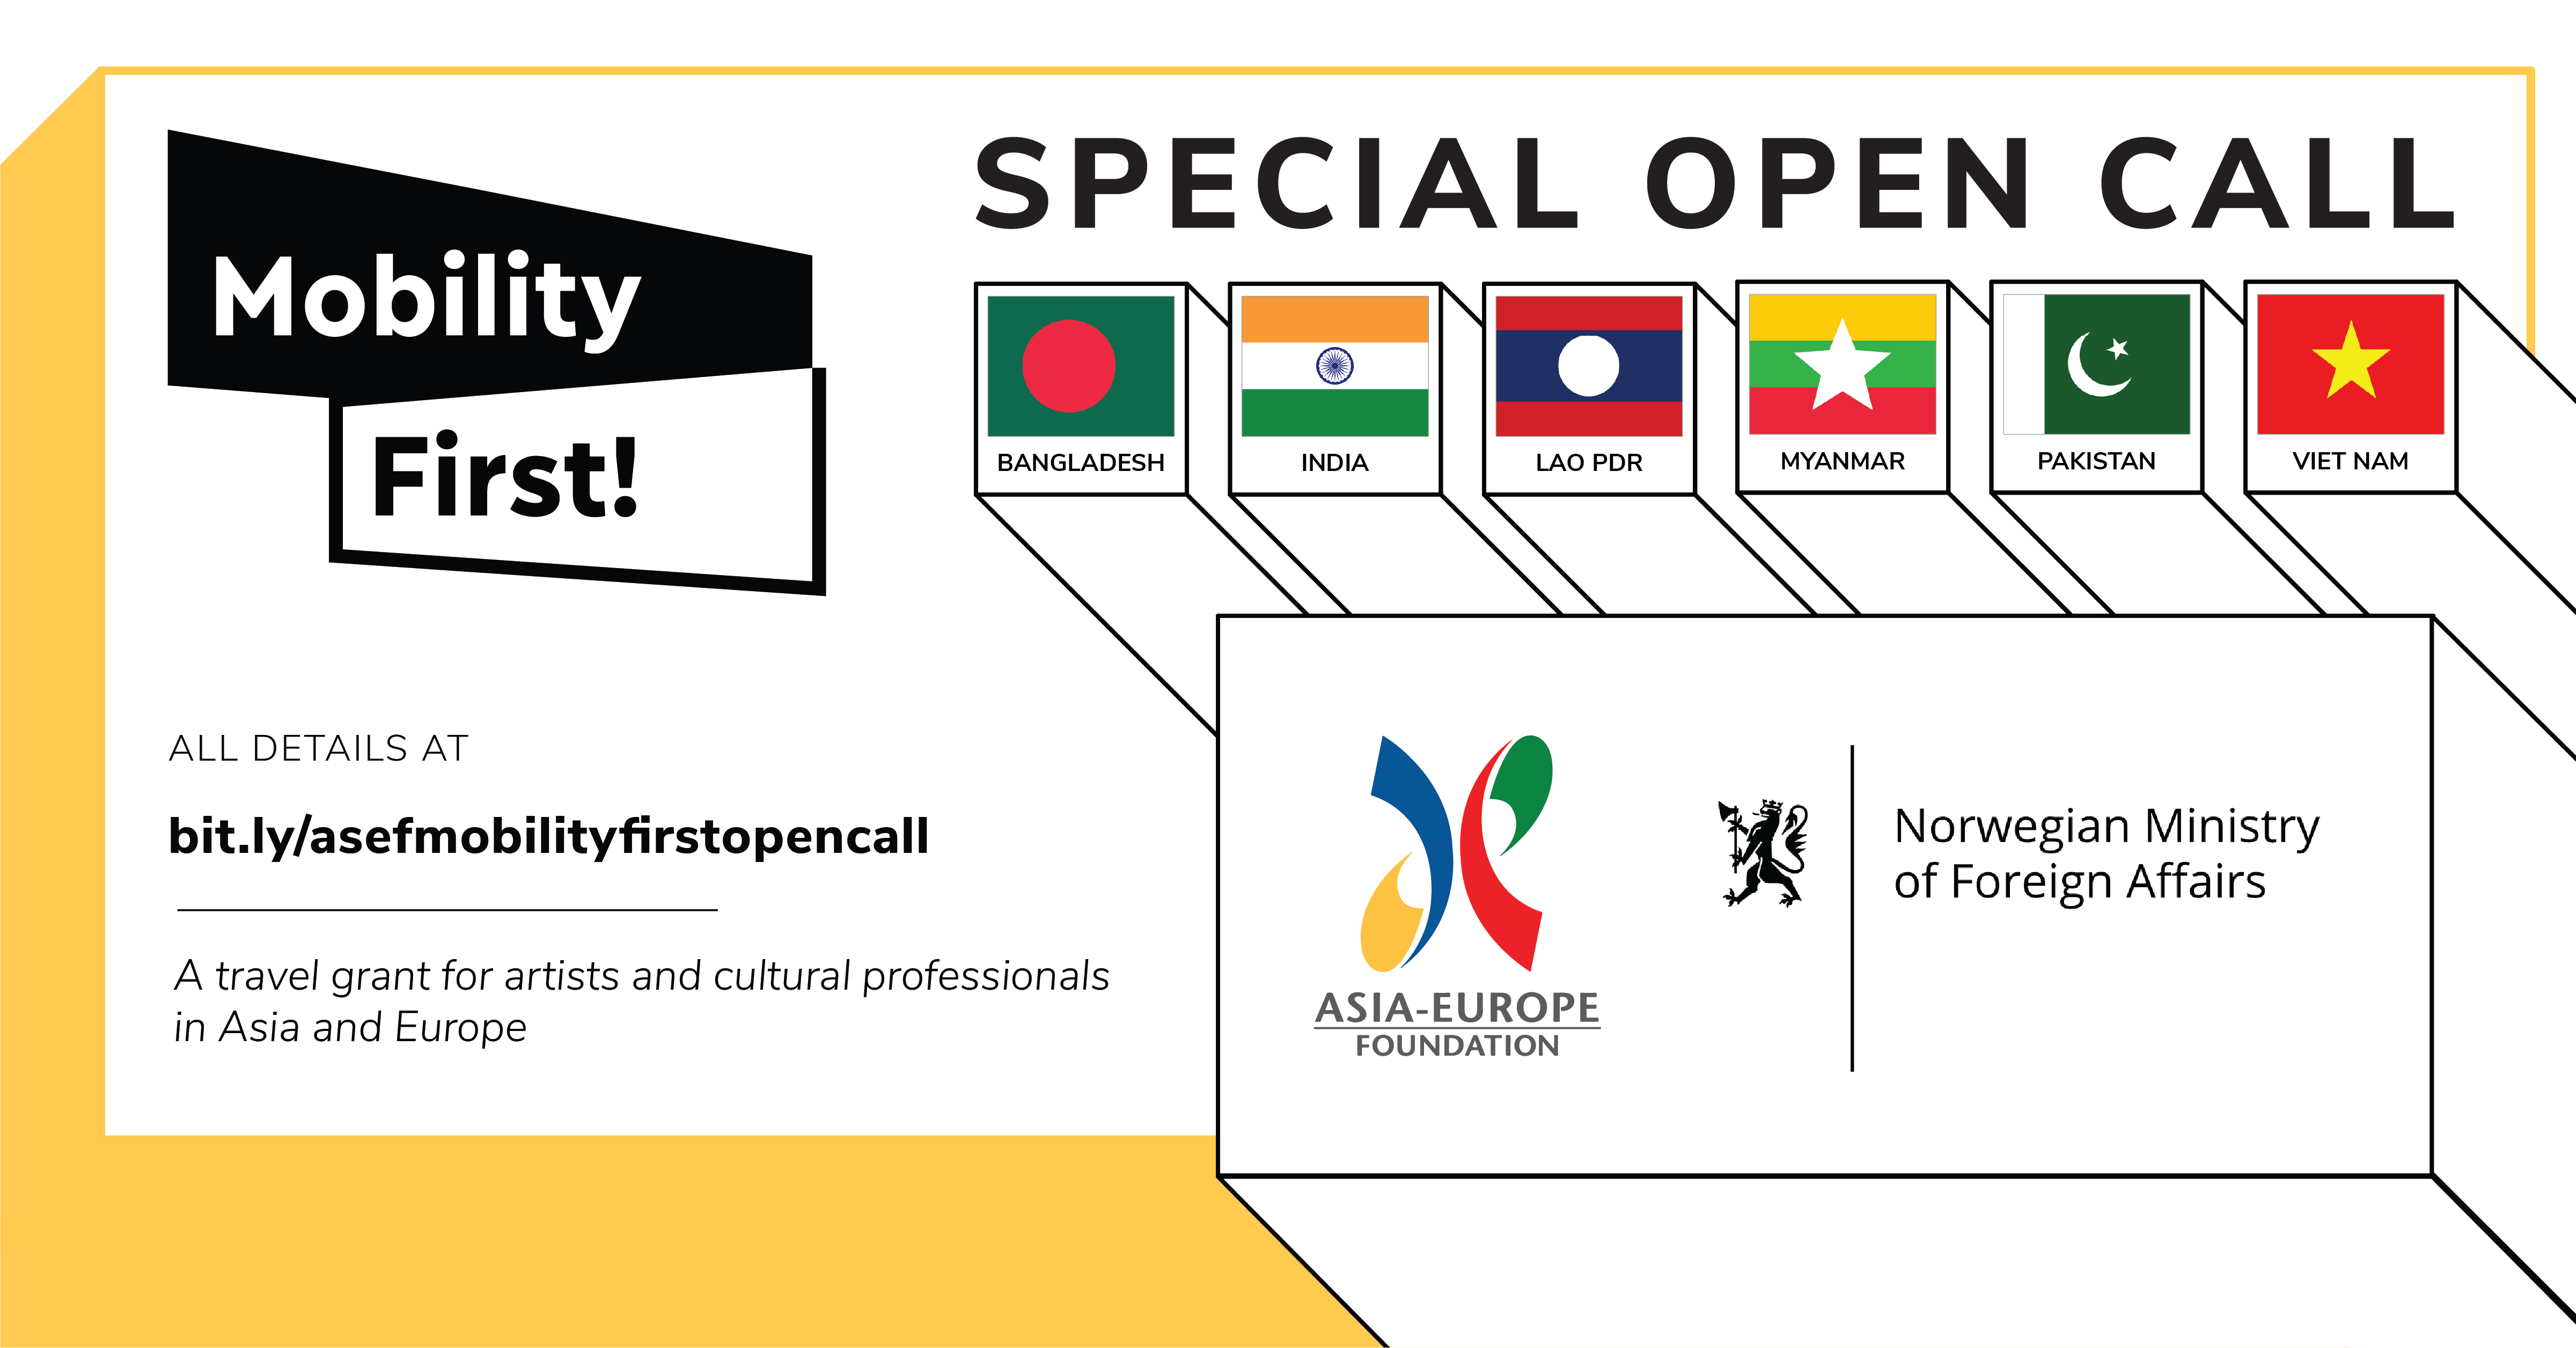 ASEF Mobility First! Special Open Call | With support from the Norwegian Ministry of Foreign Affairs